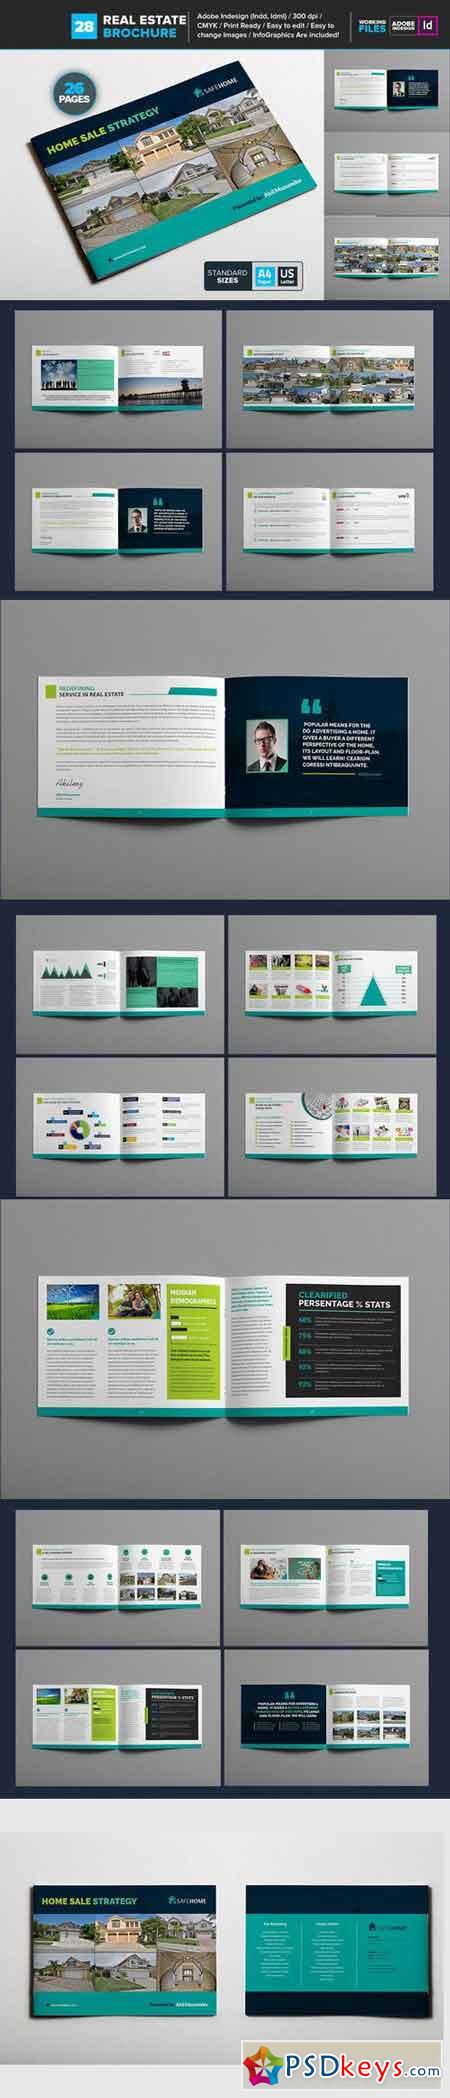 real estate brochure template 28 686510 photoshop real estate brochure template 28 686510